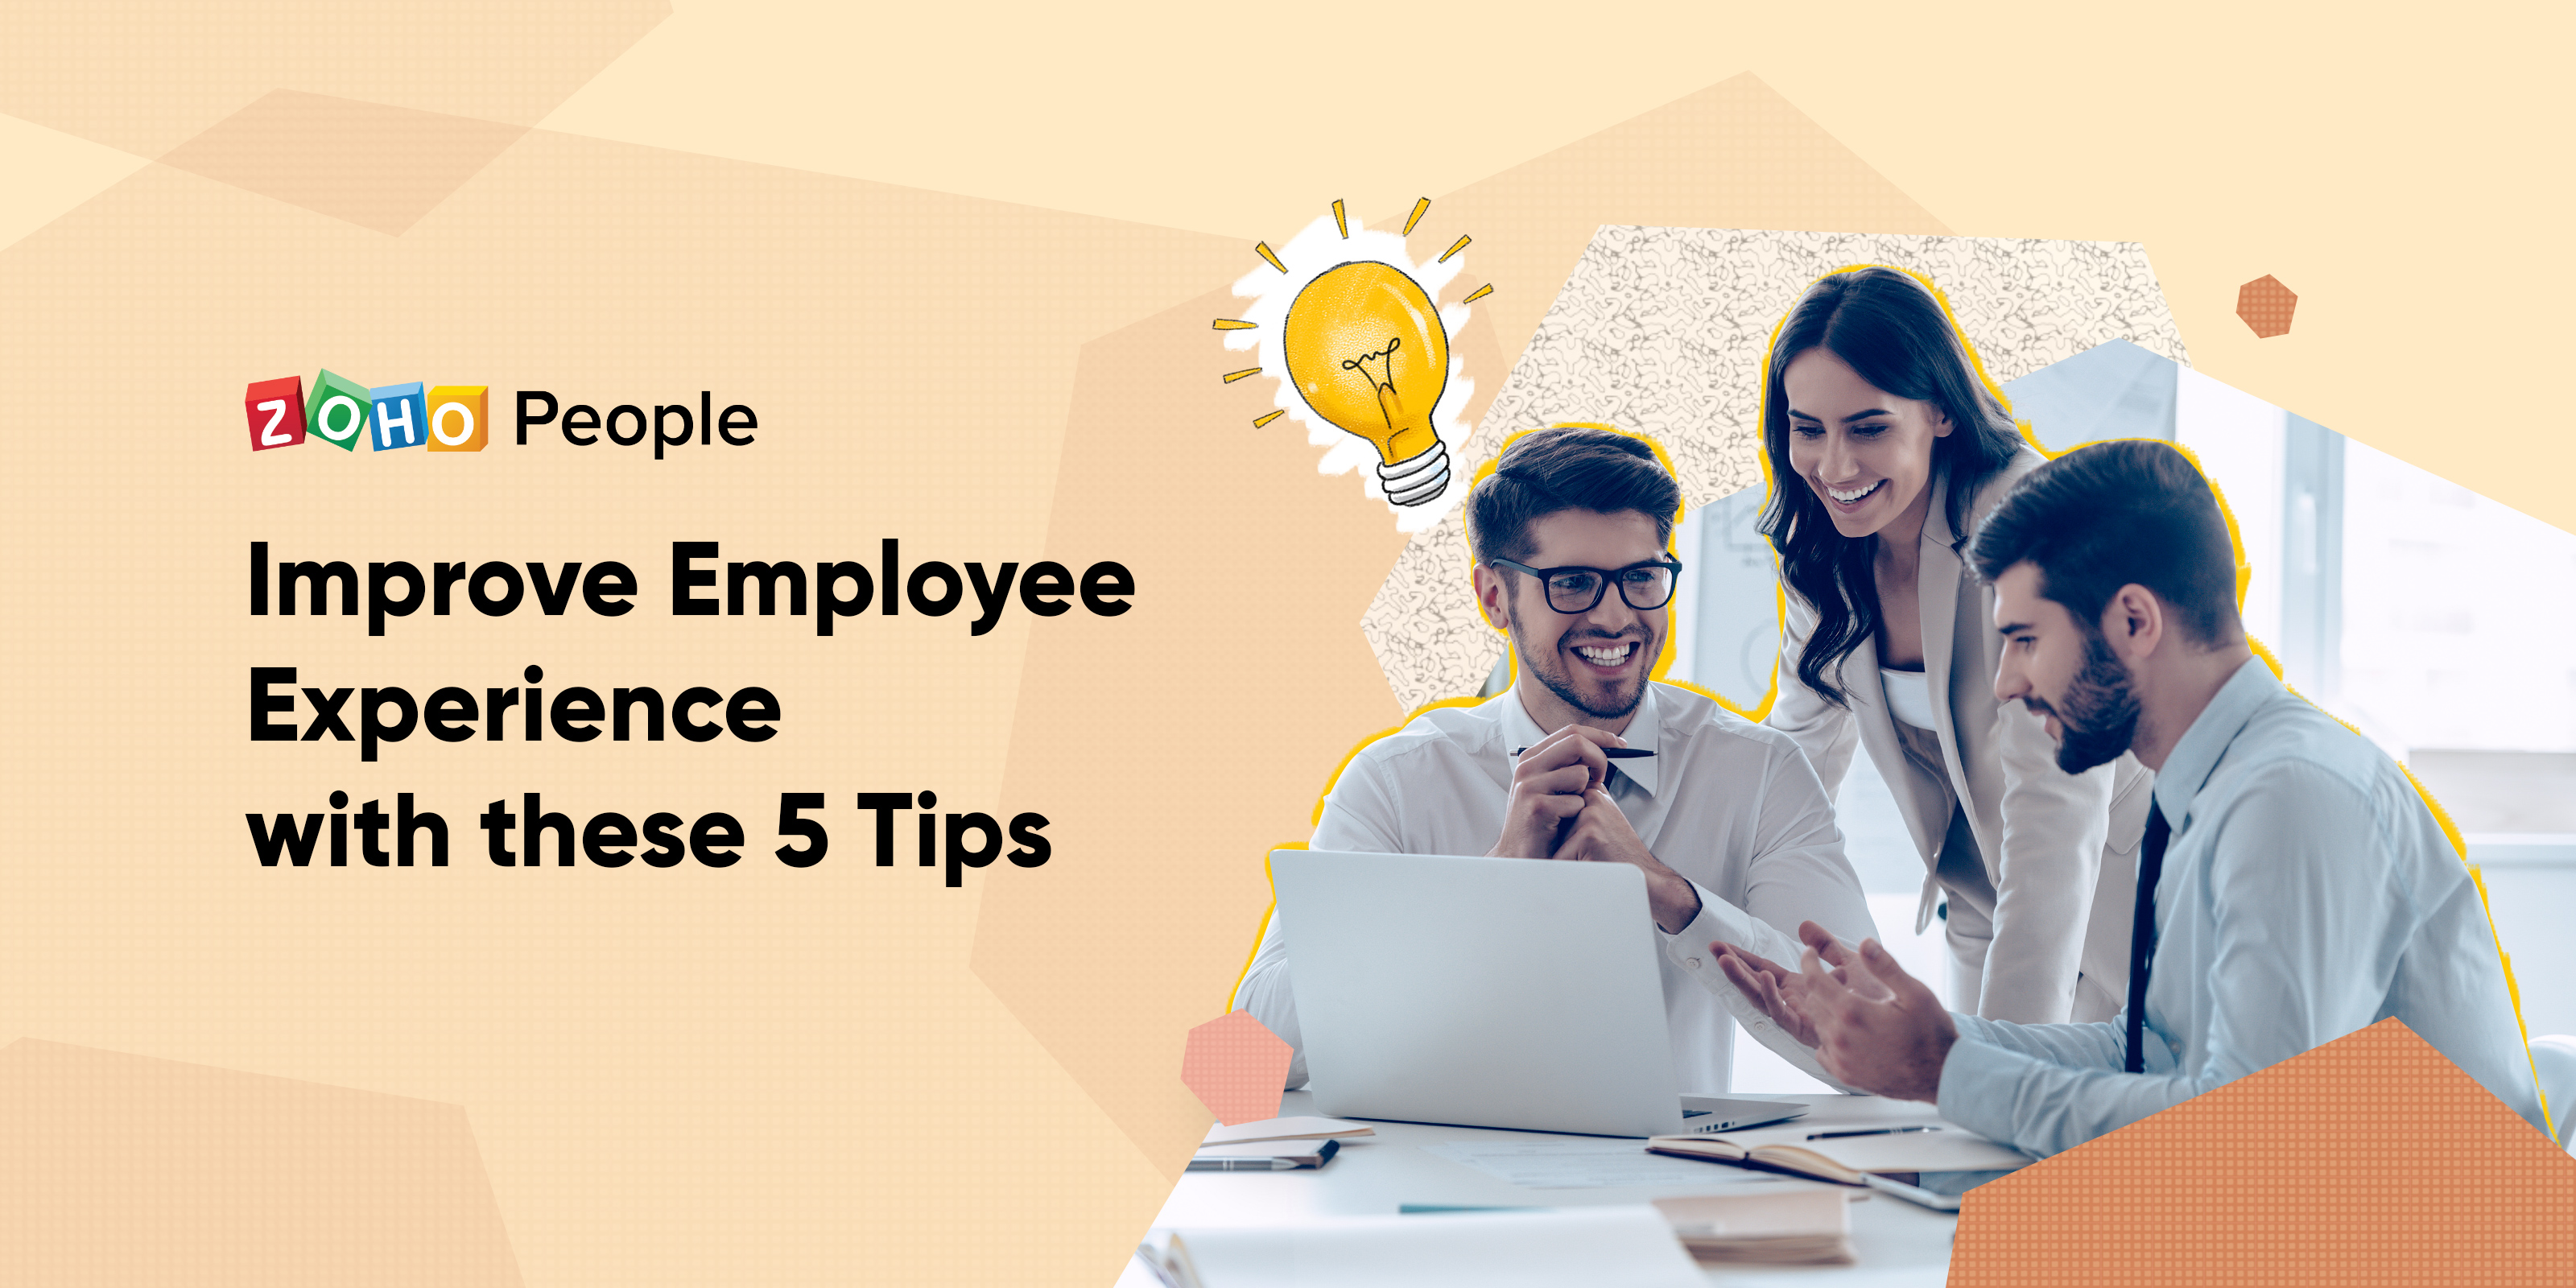 5 ways to enhance employee experience in your organization